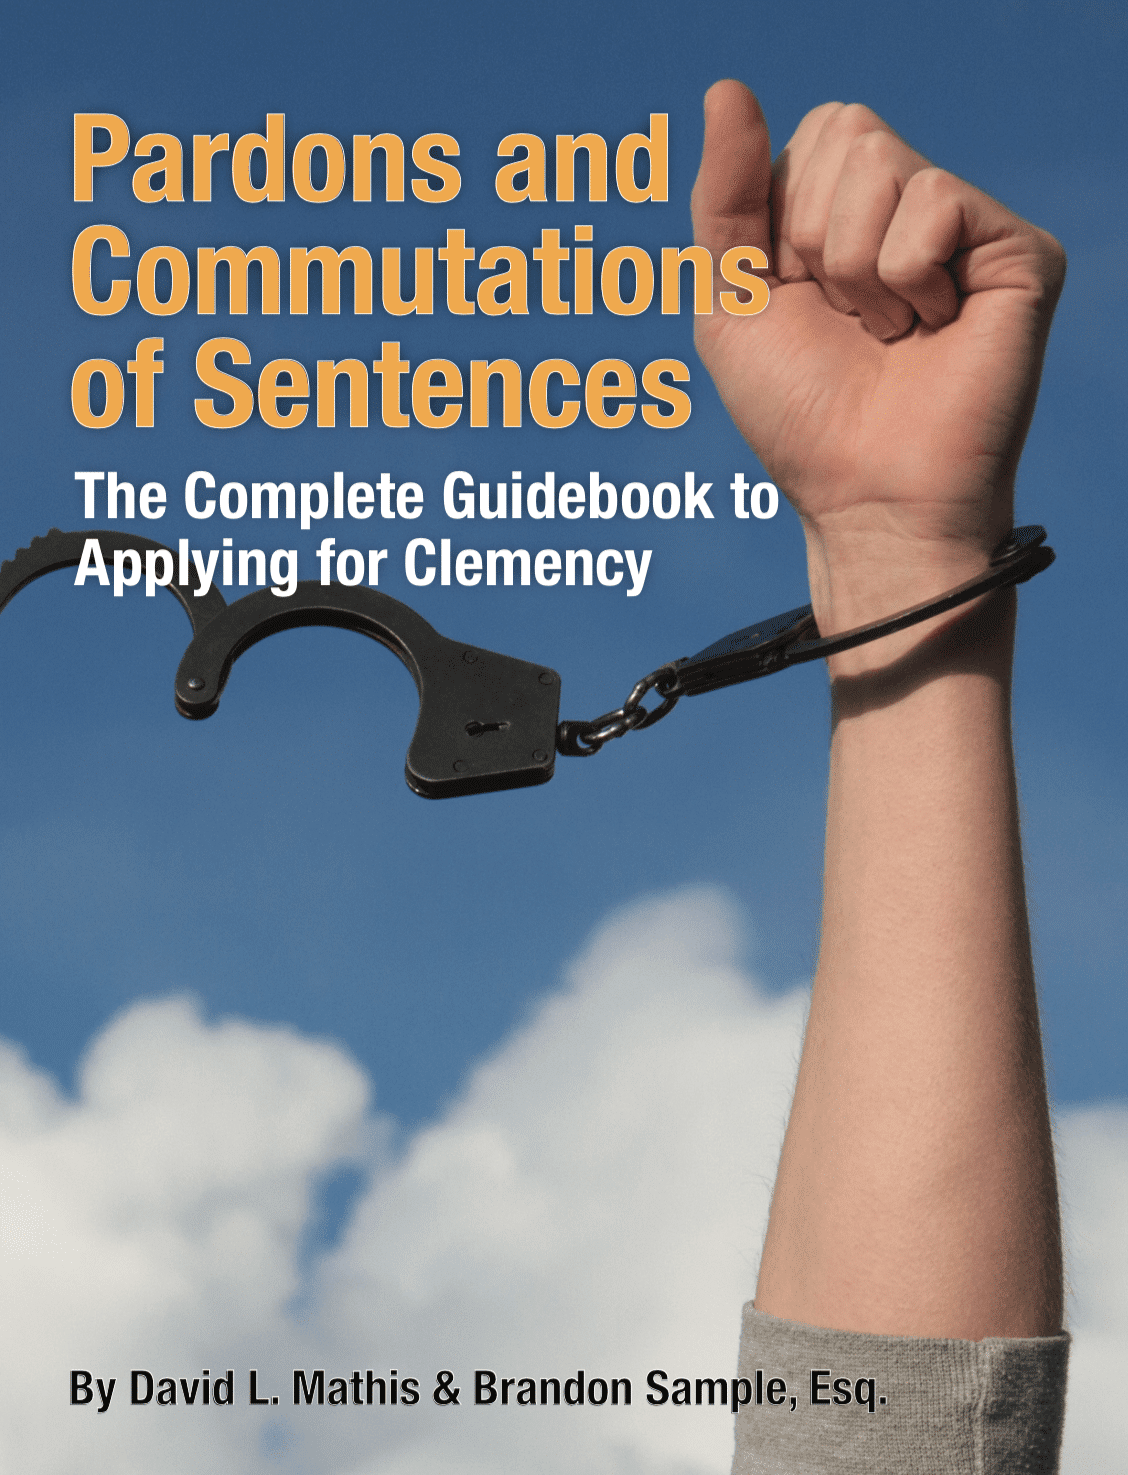 Pardons & Commutations of Sentences